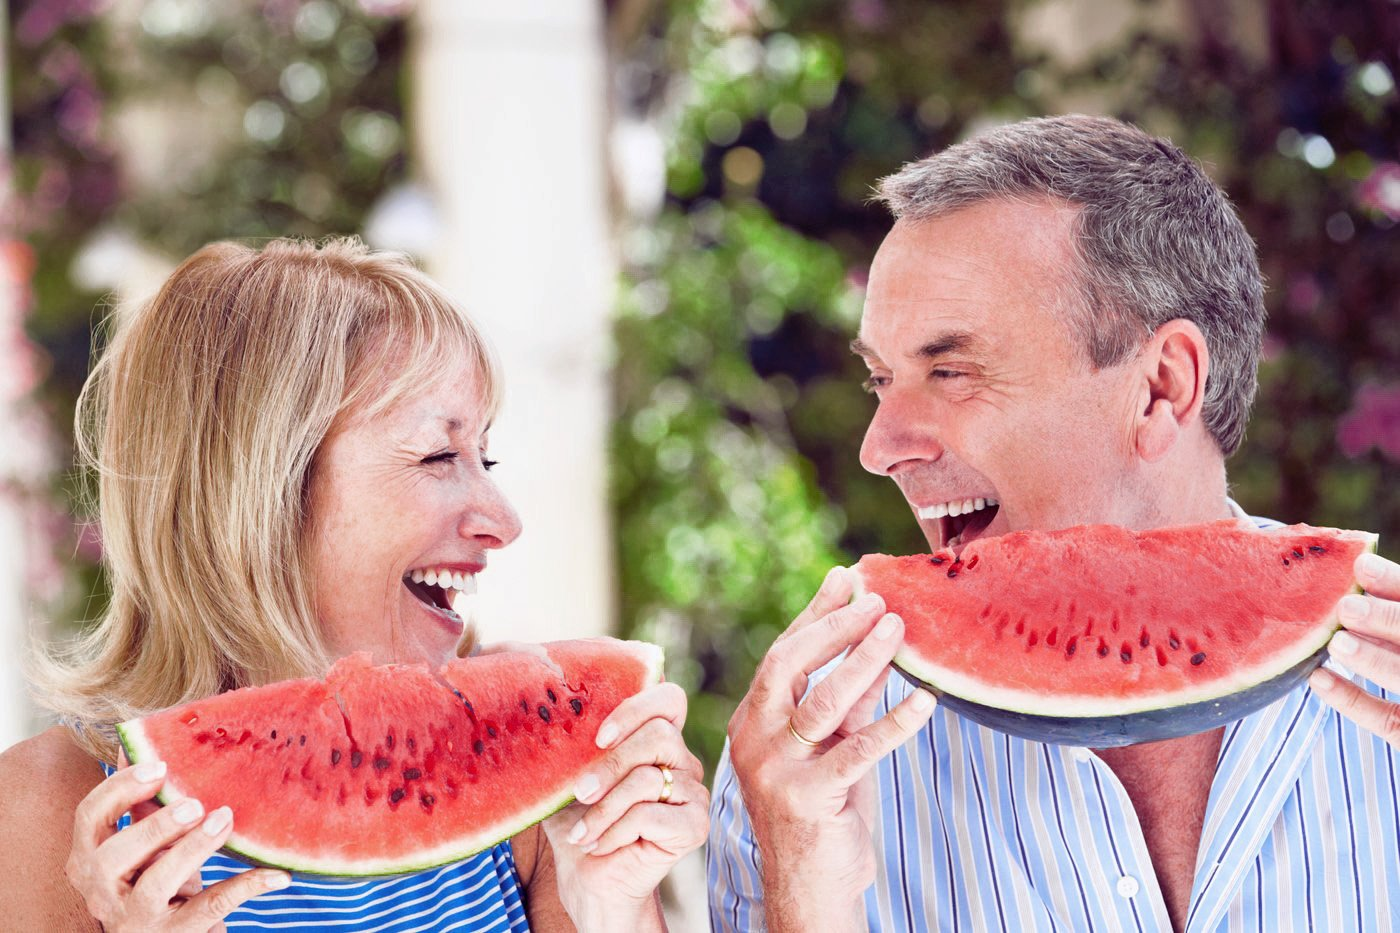 vigoria vitamins supplements couple watermelons